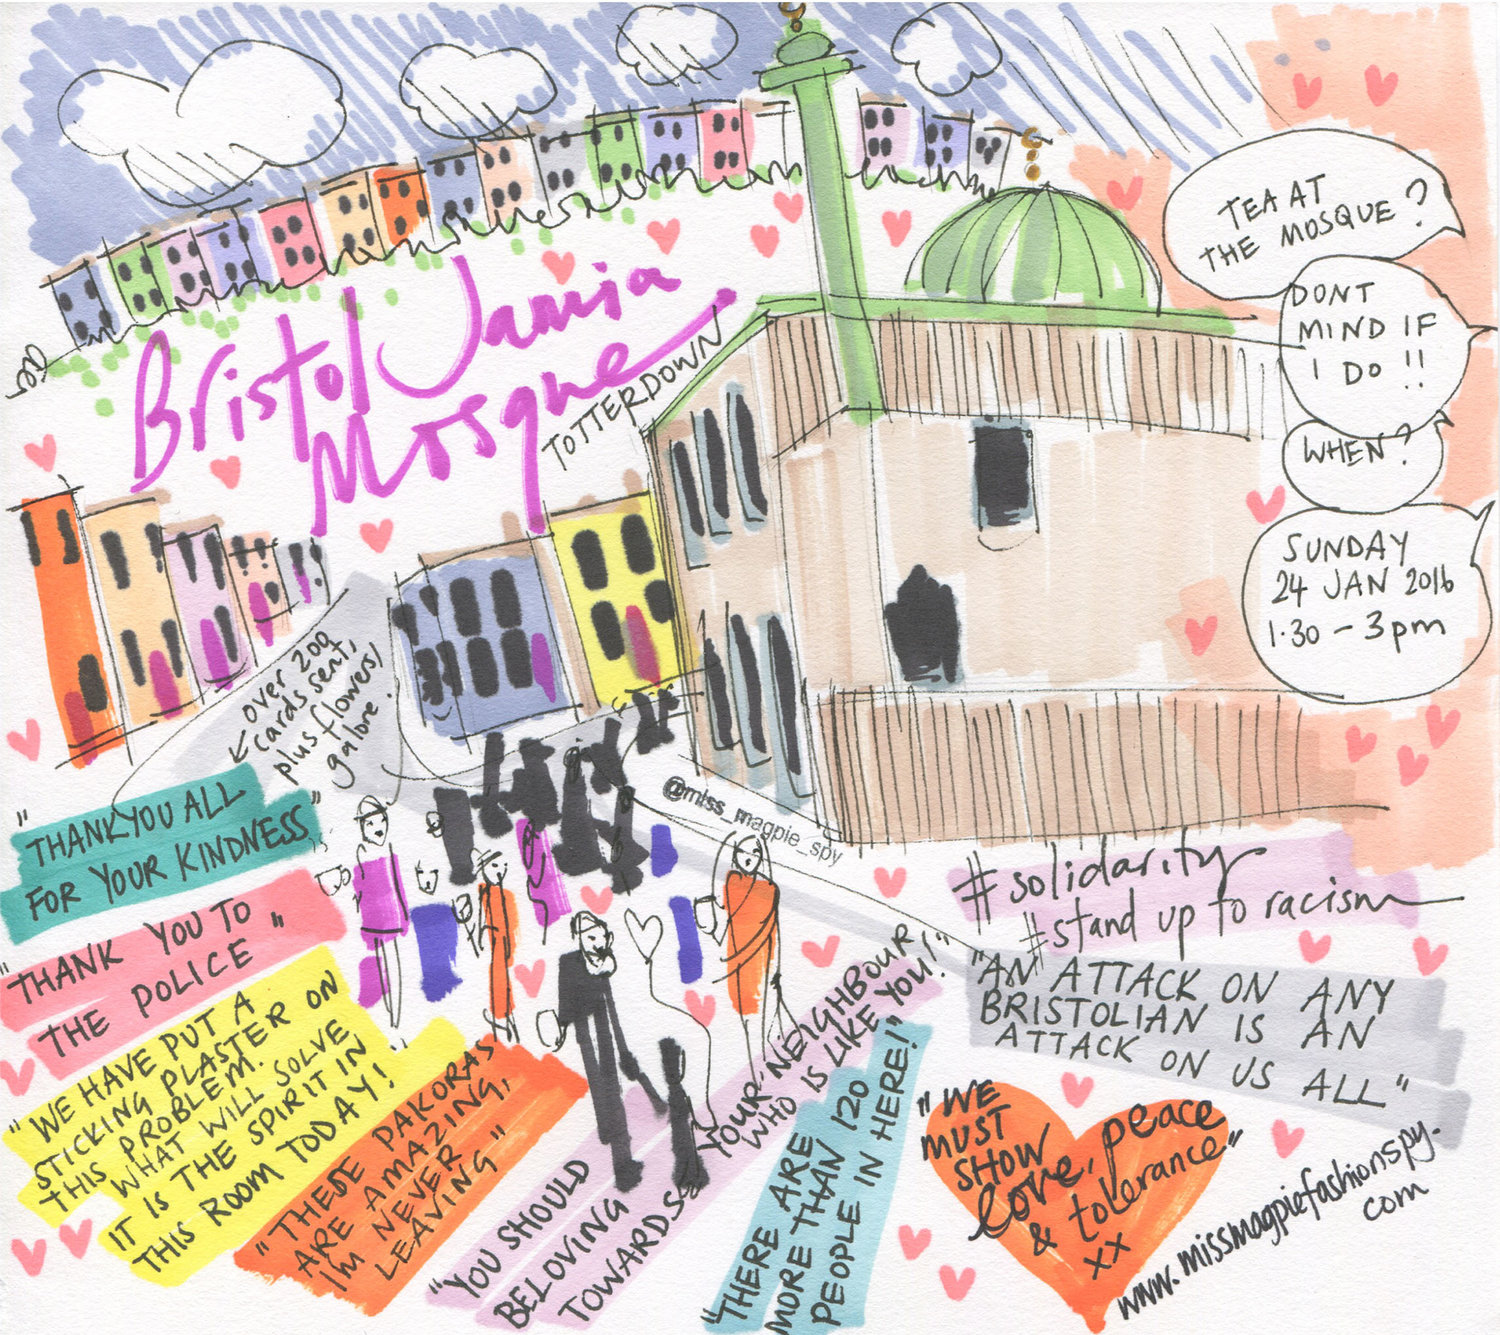 Illustrated in response to Bristol Jamia Mosque opening their doors to the community after an attack at the mosque